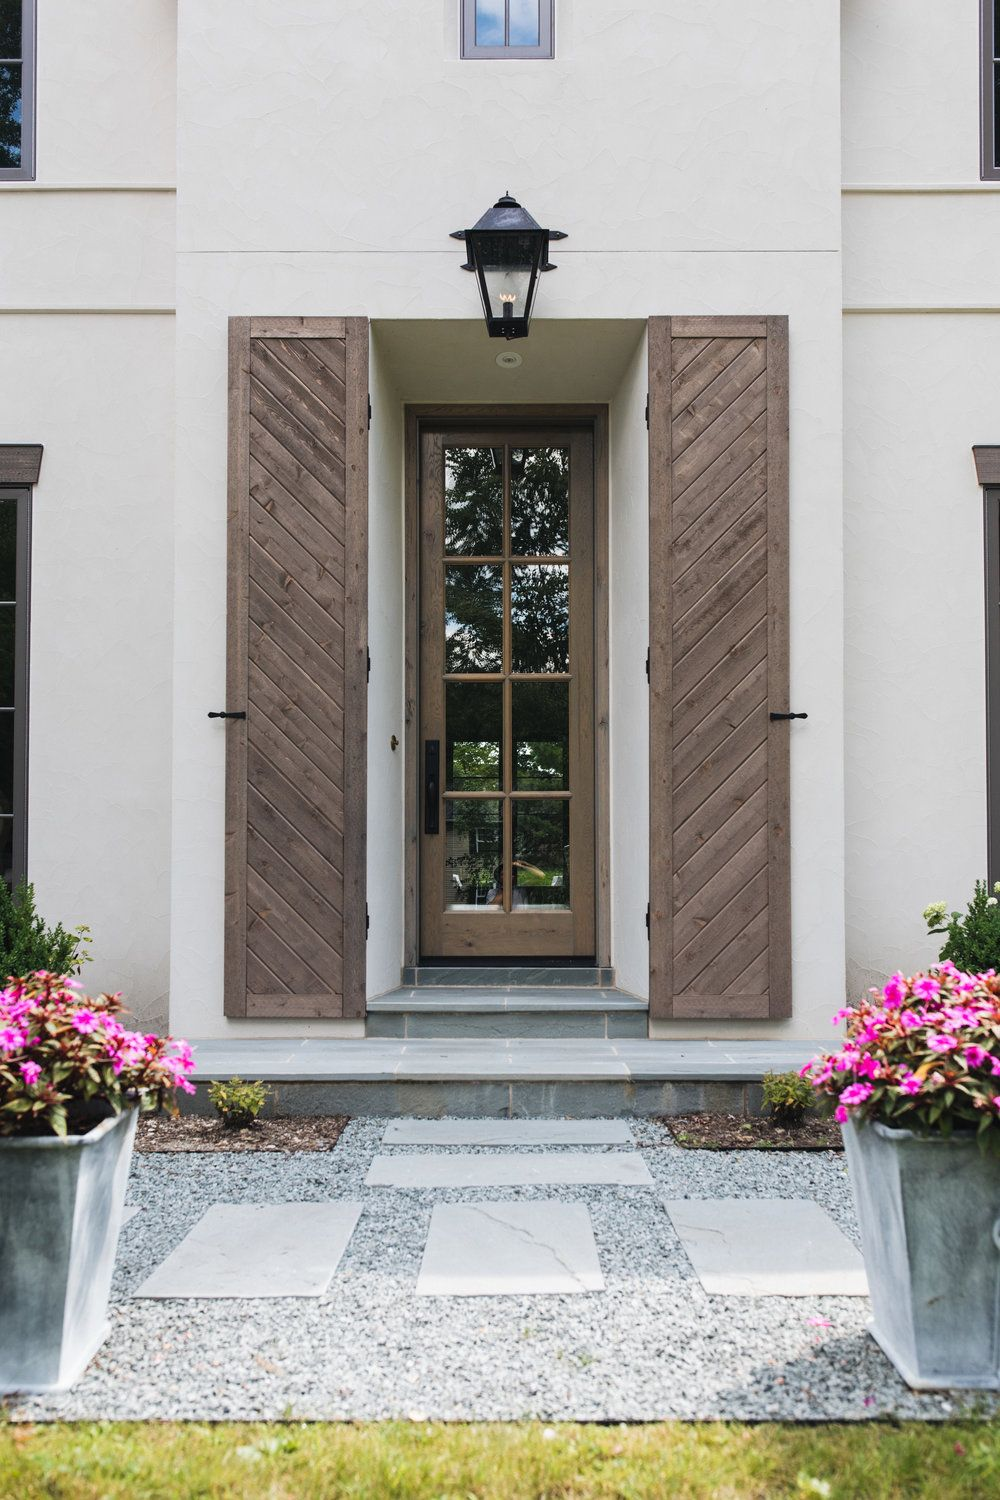 Window design for house exterior  pin by melissa lusk on exterior  pinterest